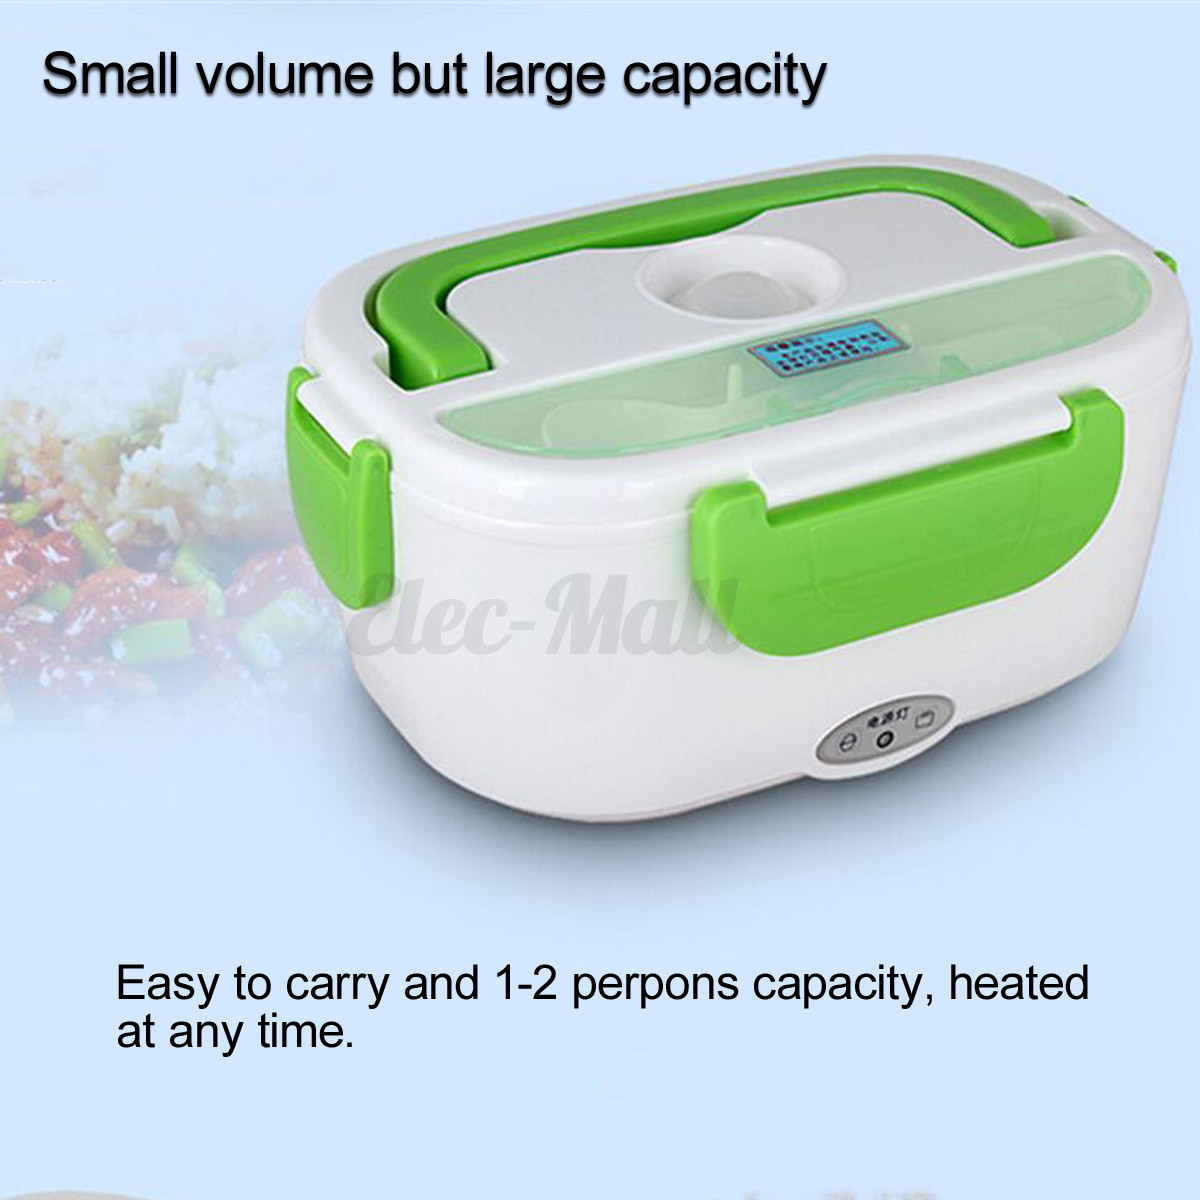 12v portable electric heated car plug heating lunch box bento travel food warmer ebay. Black Bedroom Furniture Sets. Home Design Ideas